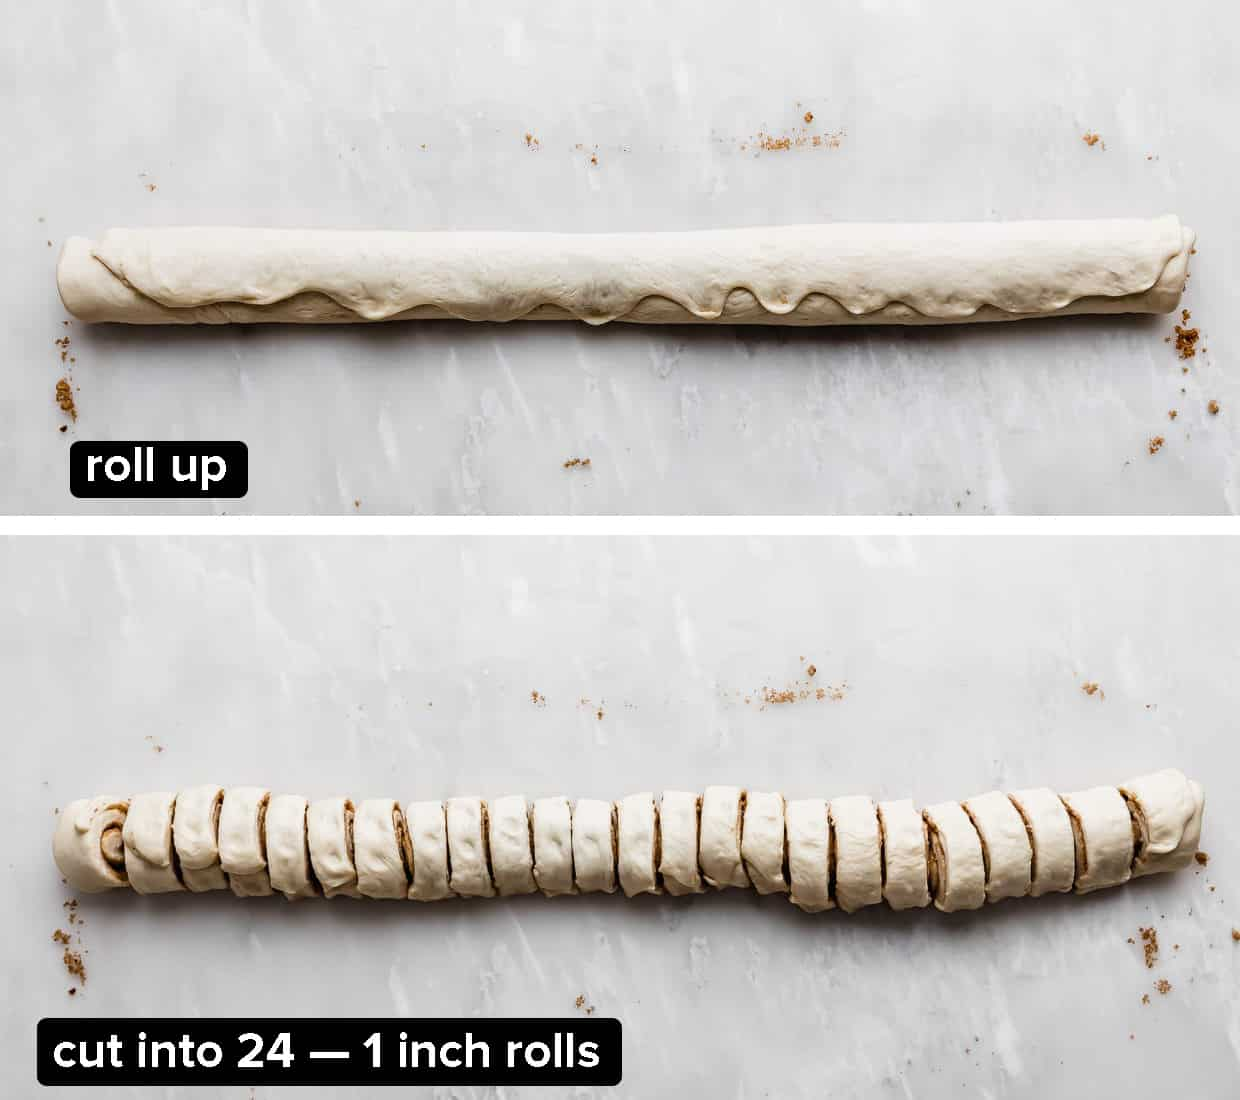 Two images showing a tube of dough rolled up and the bottom photo shows the dough cut into 24, 1 inch pieces.